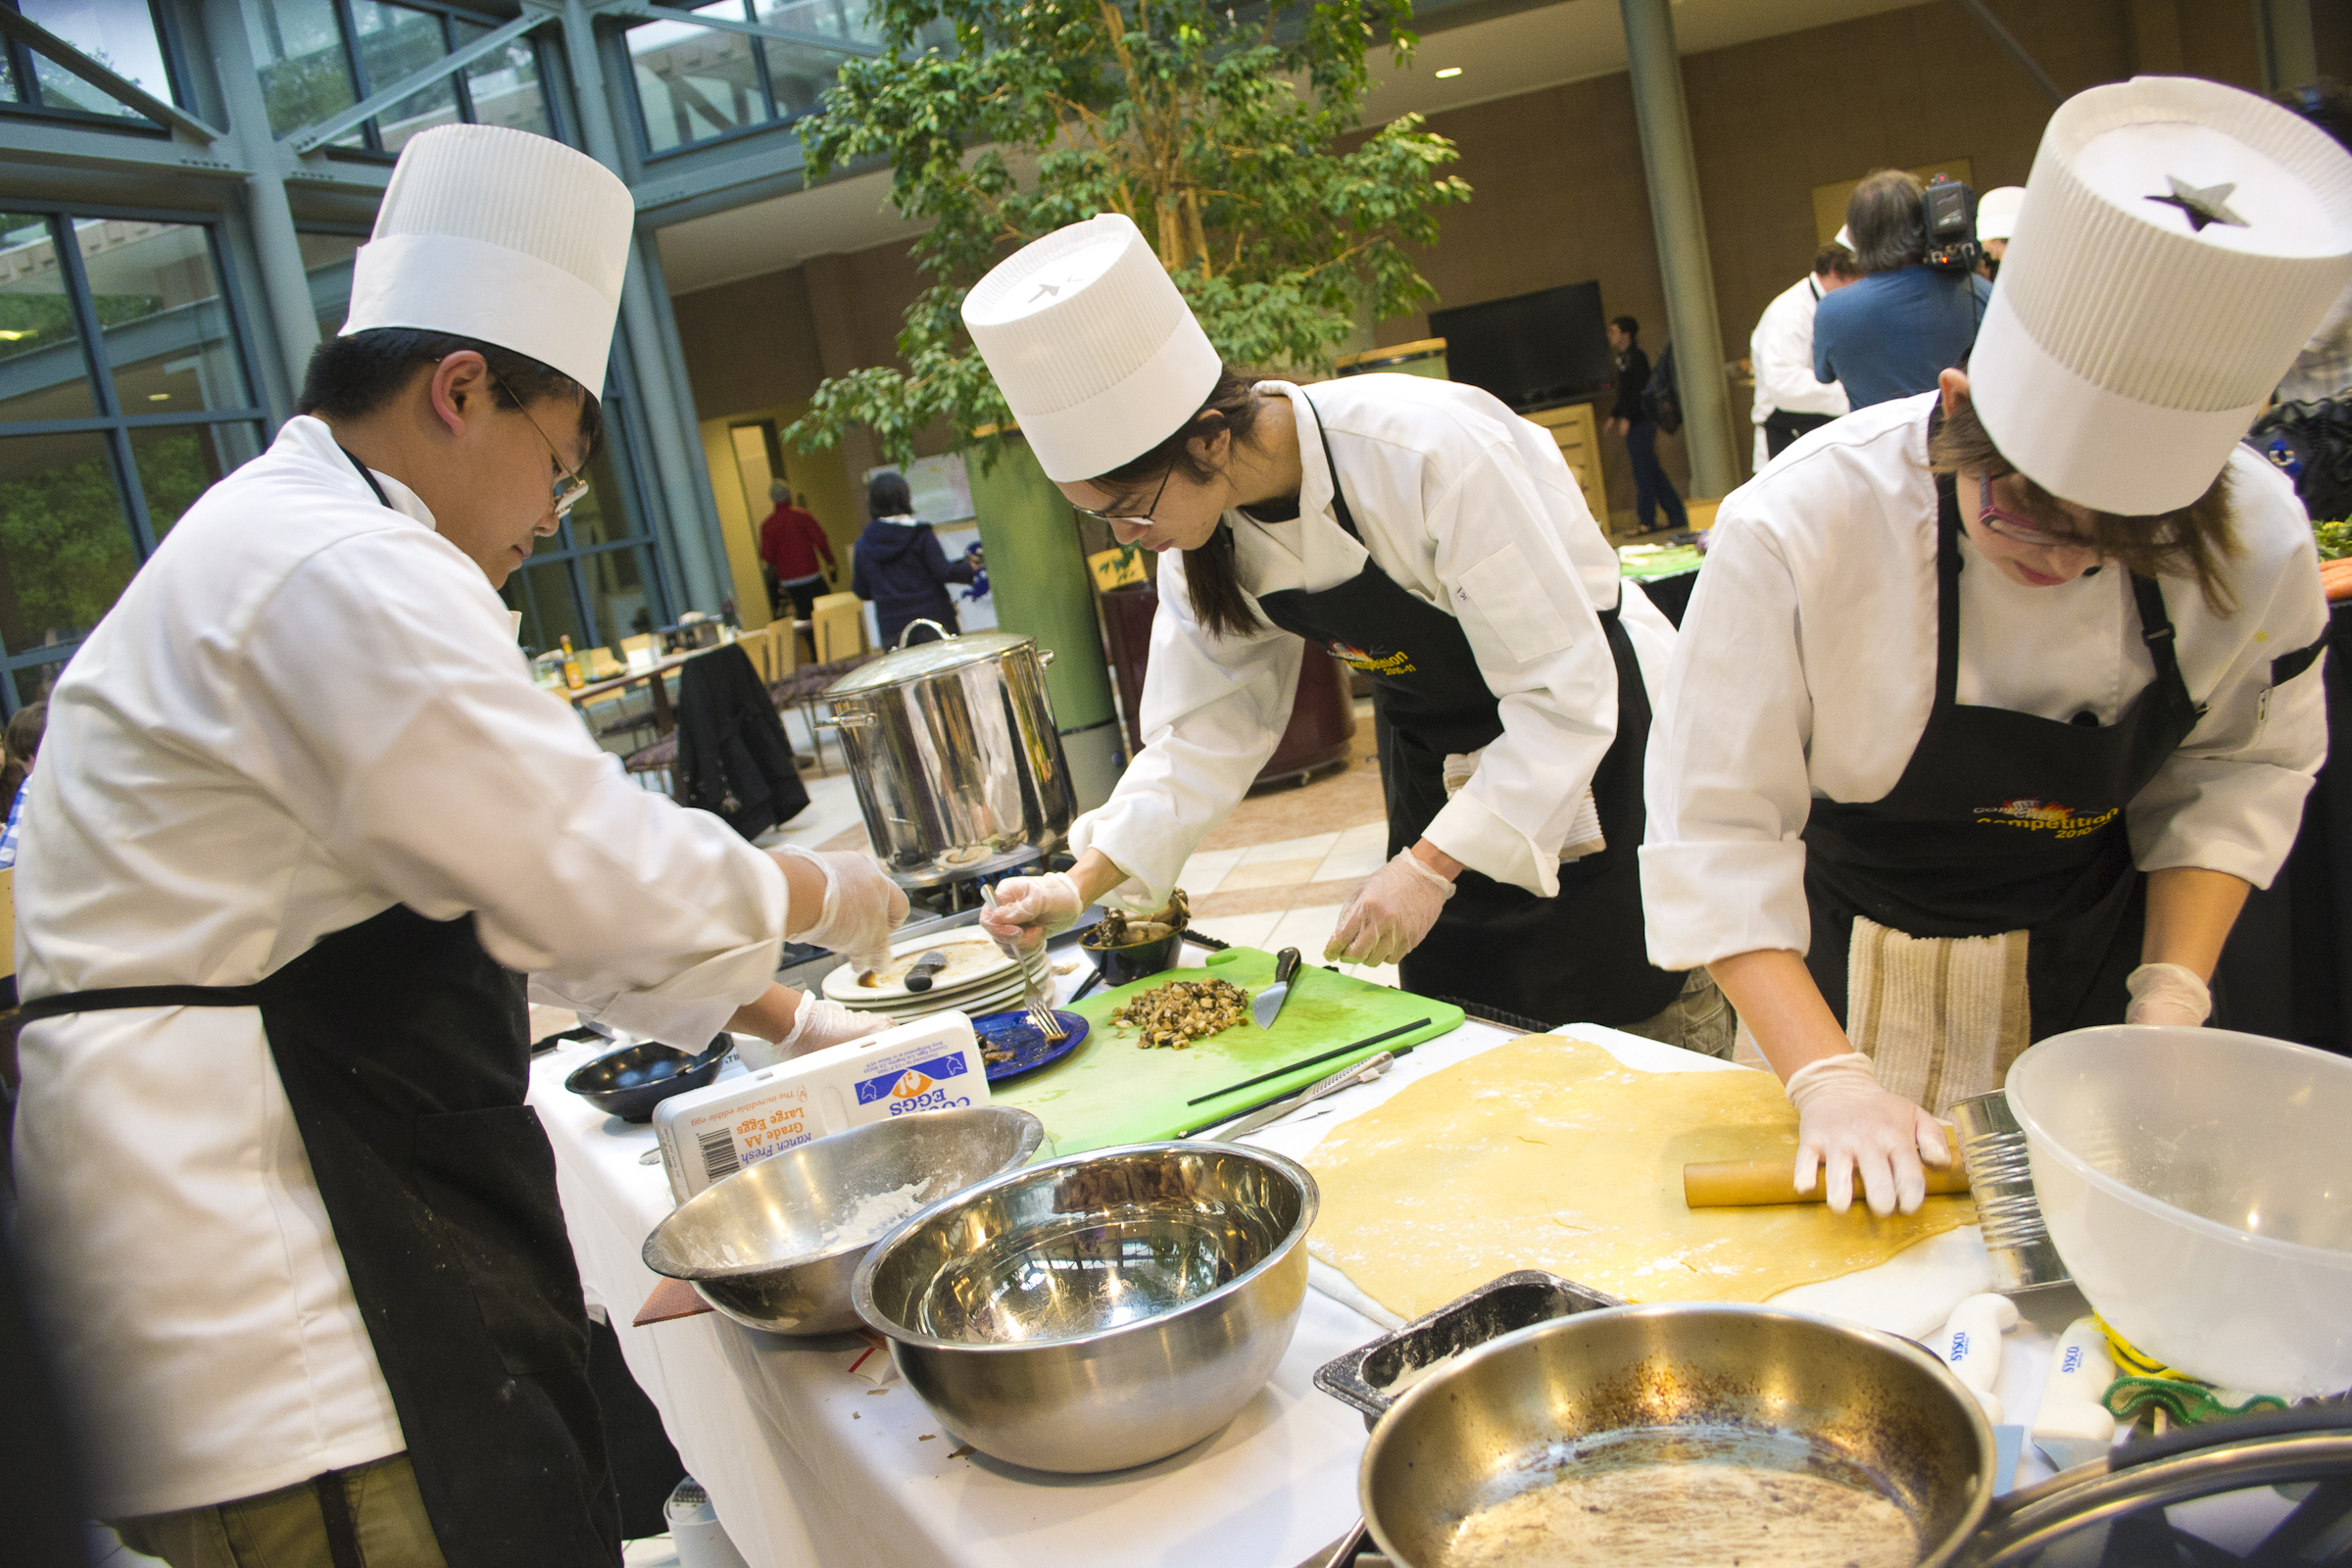 How to spice up campus with special dining events